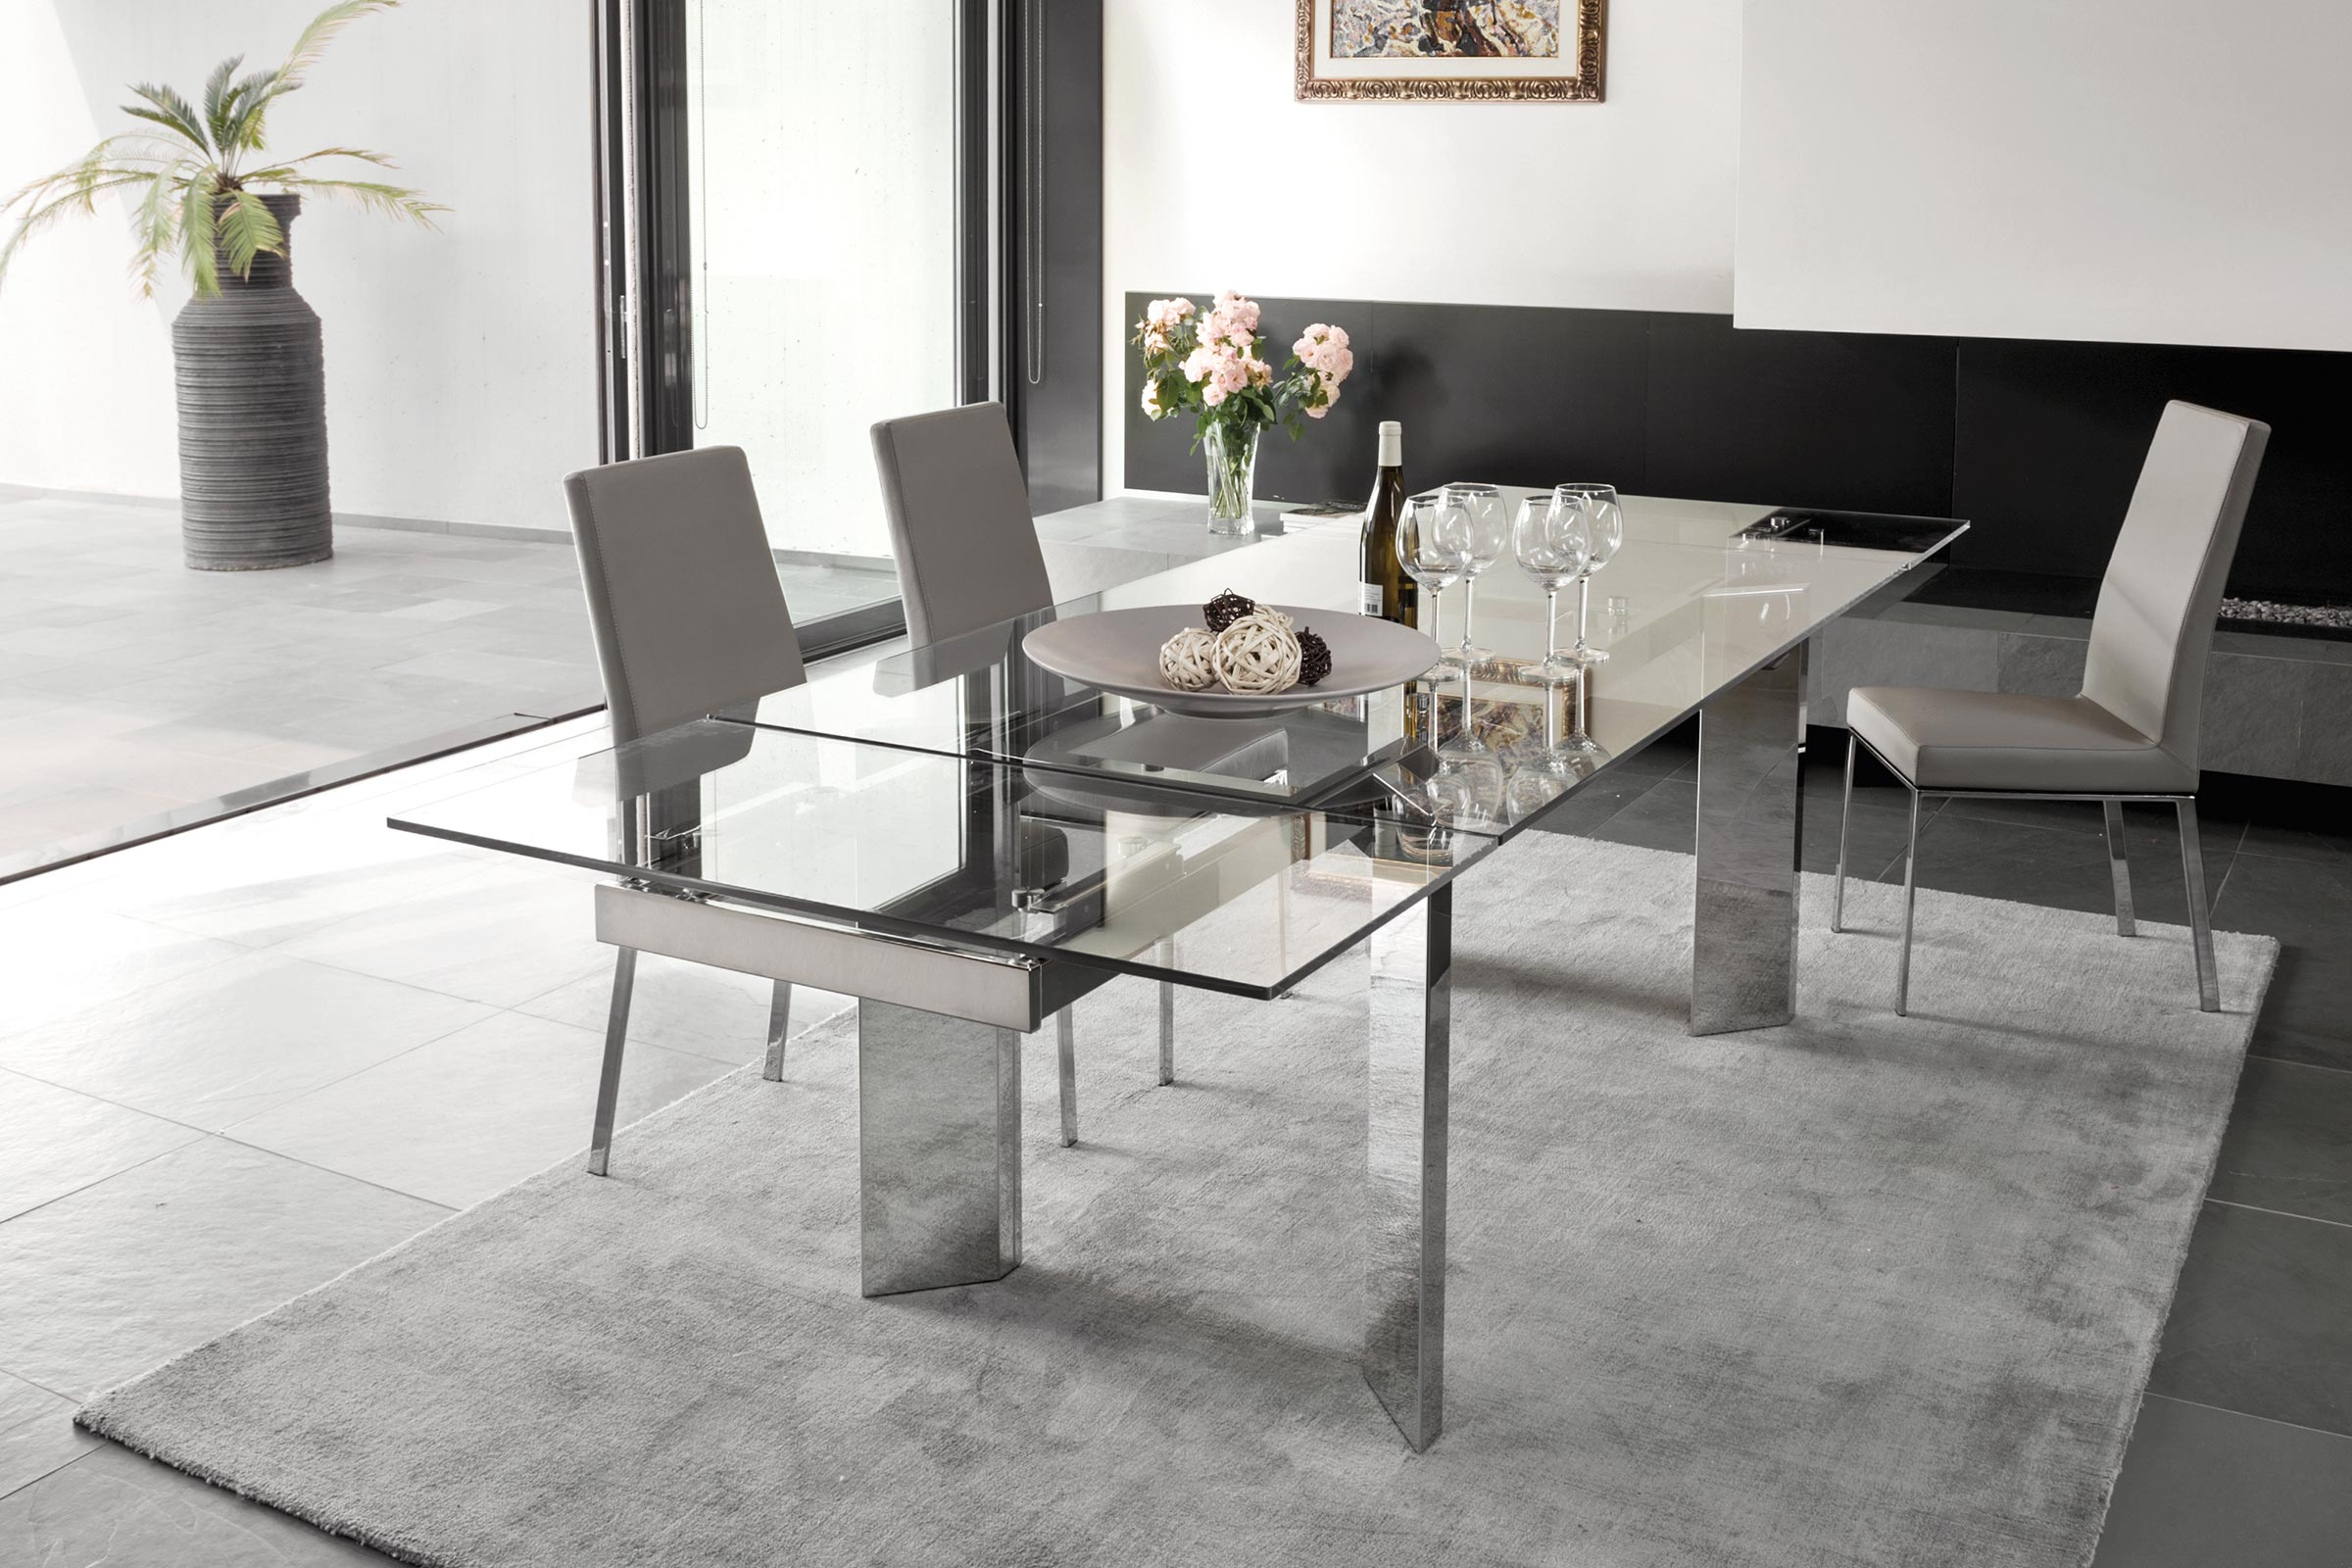 Calligaris Tower Extendable Dining Table Large Seats 8 12 Semi Automatic Coplanar Extension System Cs4057 R 180 Calligaris Nyc New York City Soho Chelsea Upper East Side